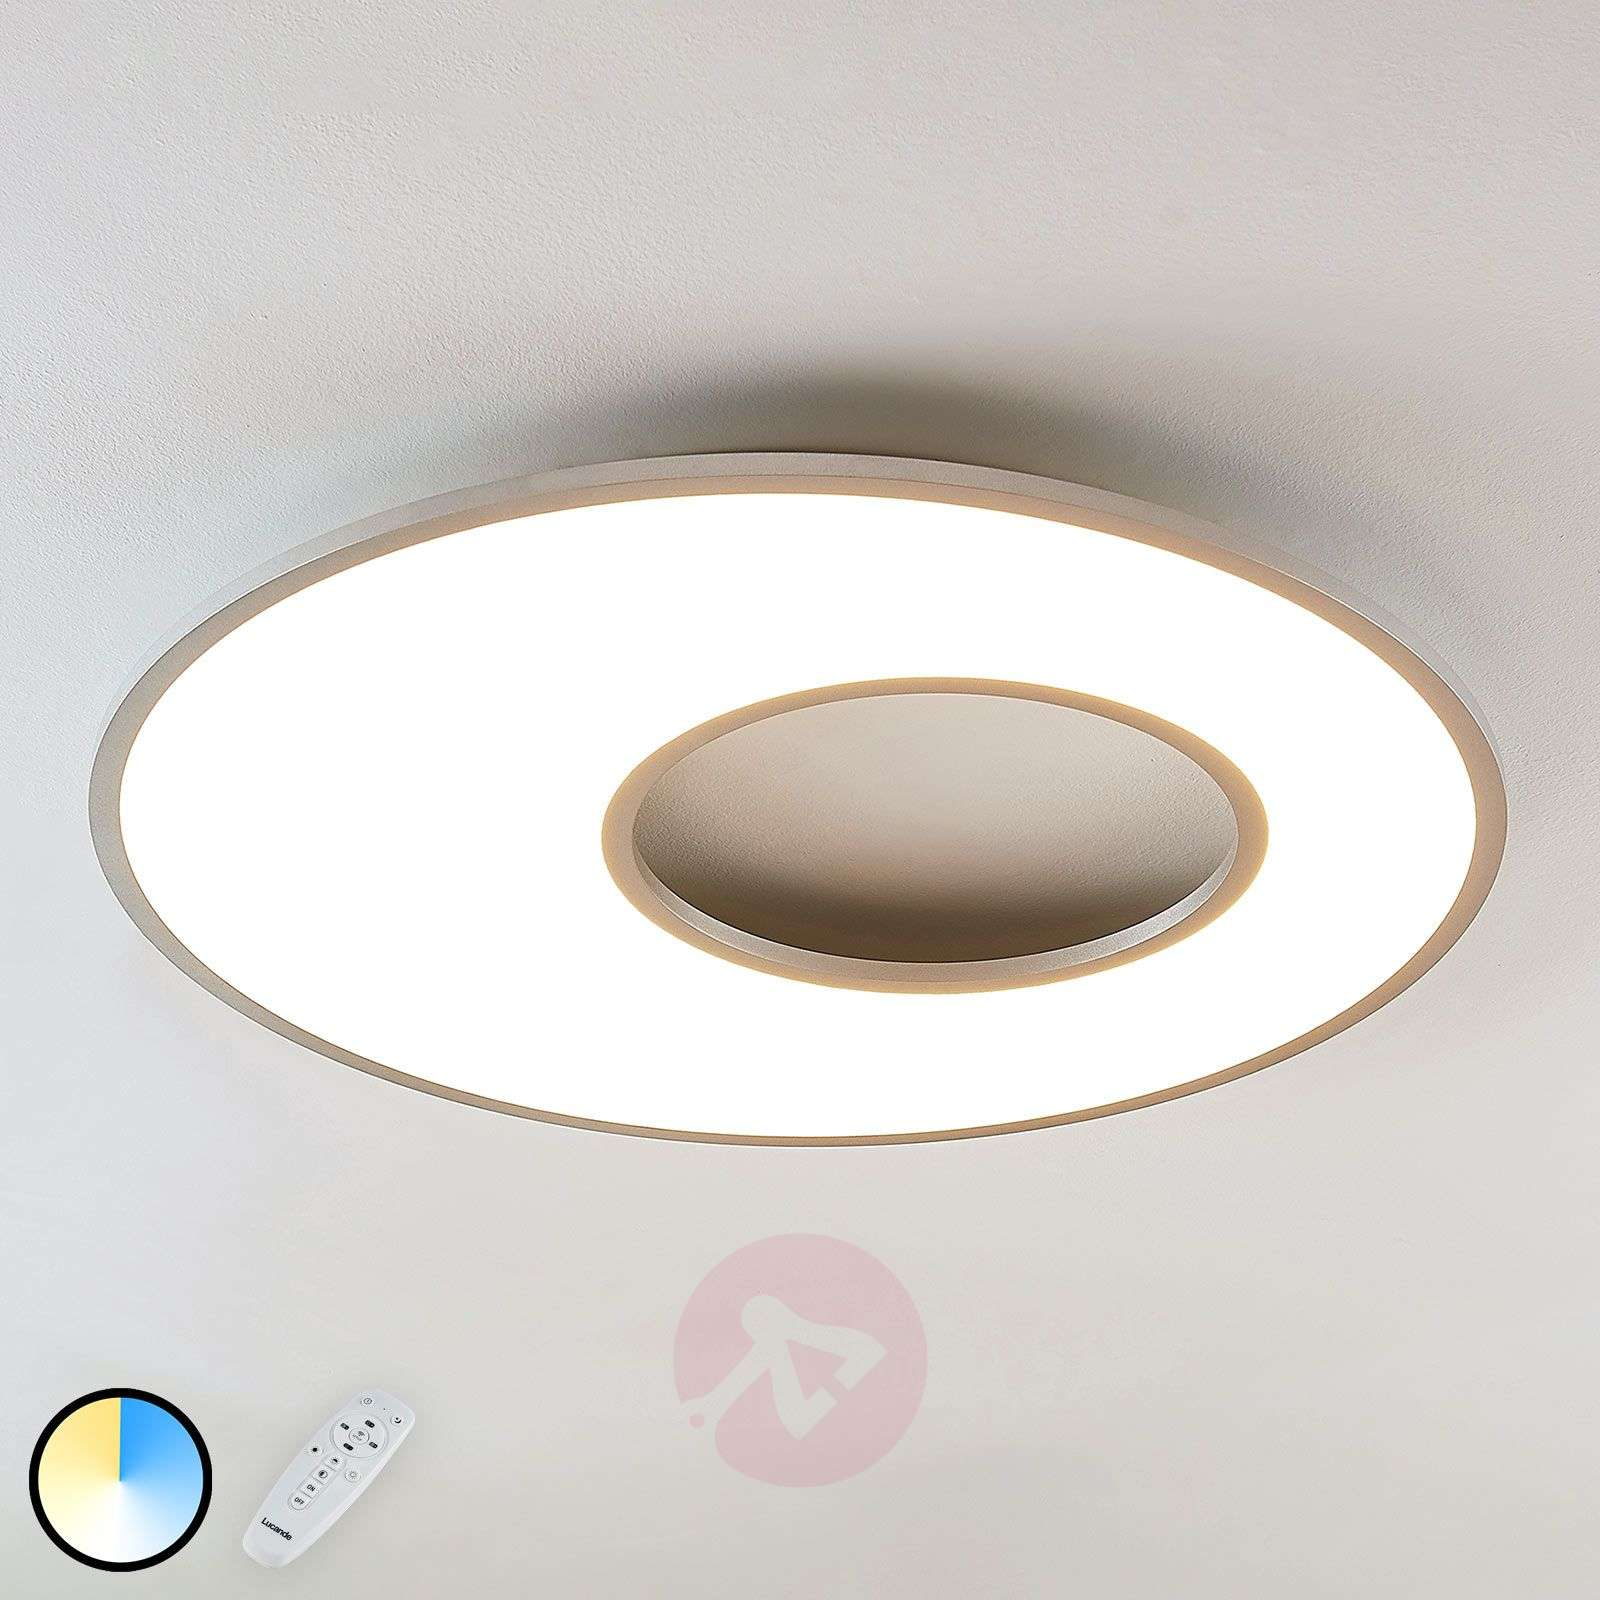 Plafonnier LED Durun, dimmable, CCT, rond, 80 cm-9956025-03